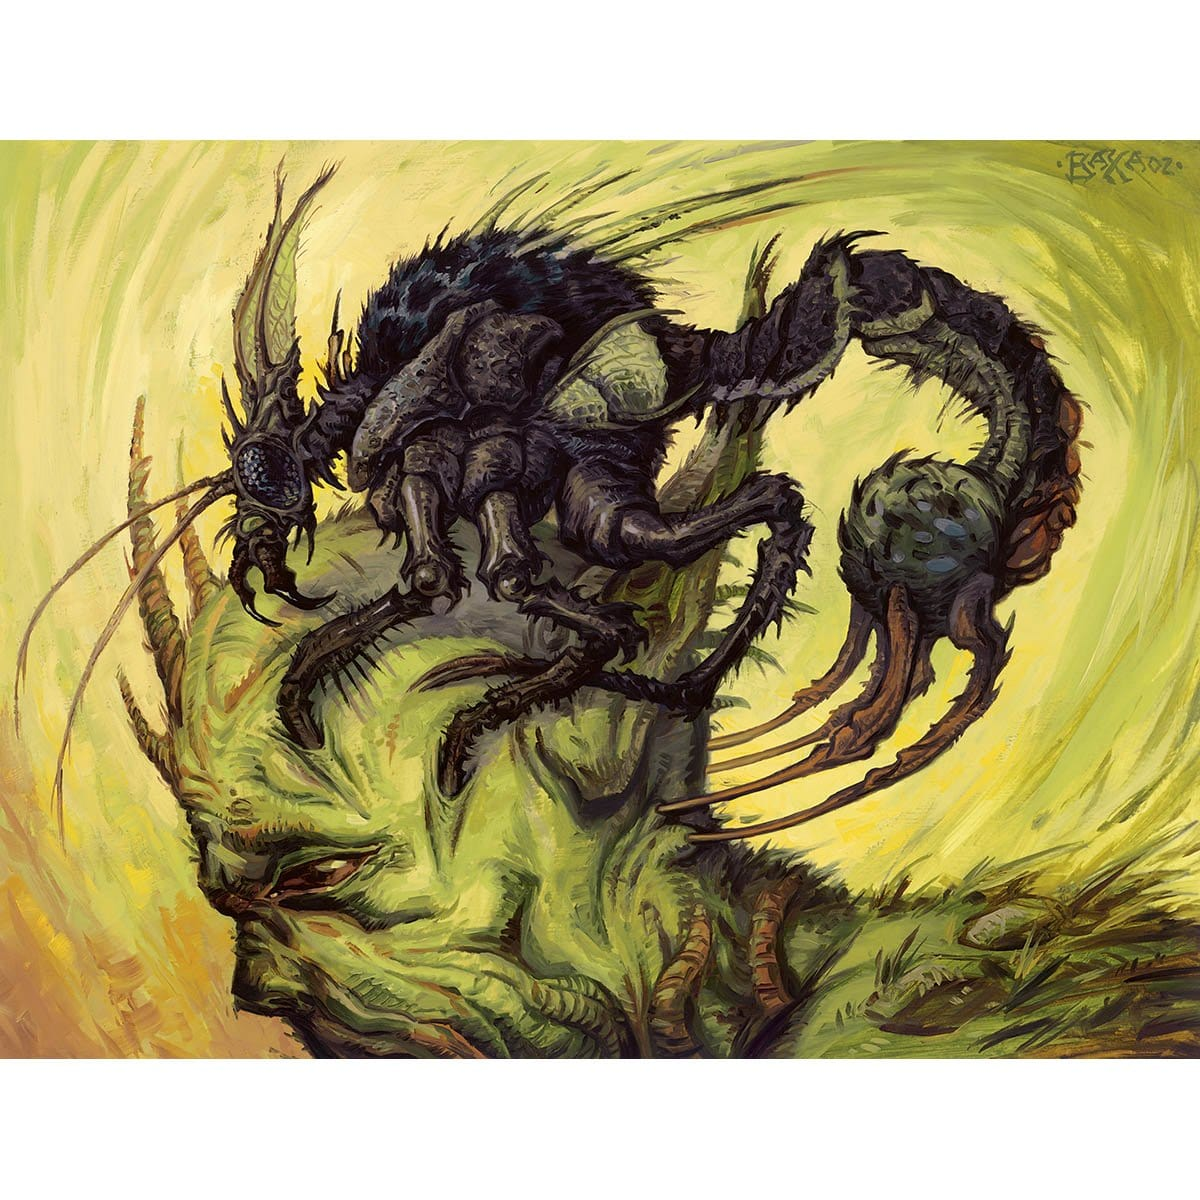 Wirewood Symbiote Print - Print - Original Magic Art - Accessories for Magic the Gathering and other card games